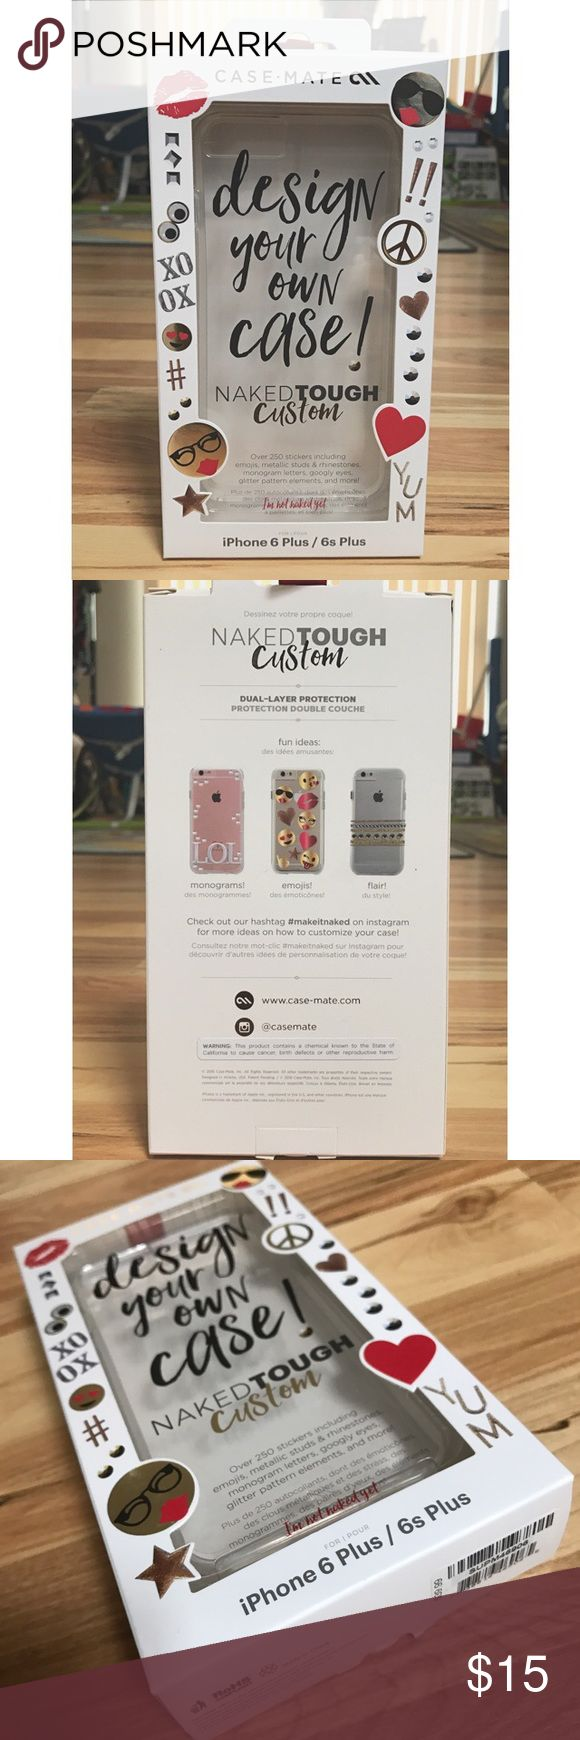 Design Your Own Case Kit | Case Mate Design your own case kit that includes a clear case and 250 stickers (emojis, metallic studs & rhinestones, monogram letters, googly eyes, glitter pattern elements, and more!) | Kit for IPHONE 6 PLUS / 6s PLUS | Boxes are unopened | NWT Case Mate Accessories Phone Cases